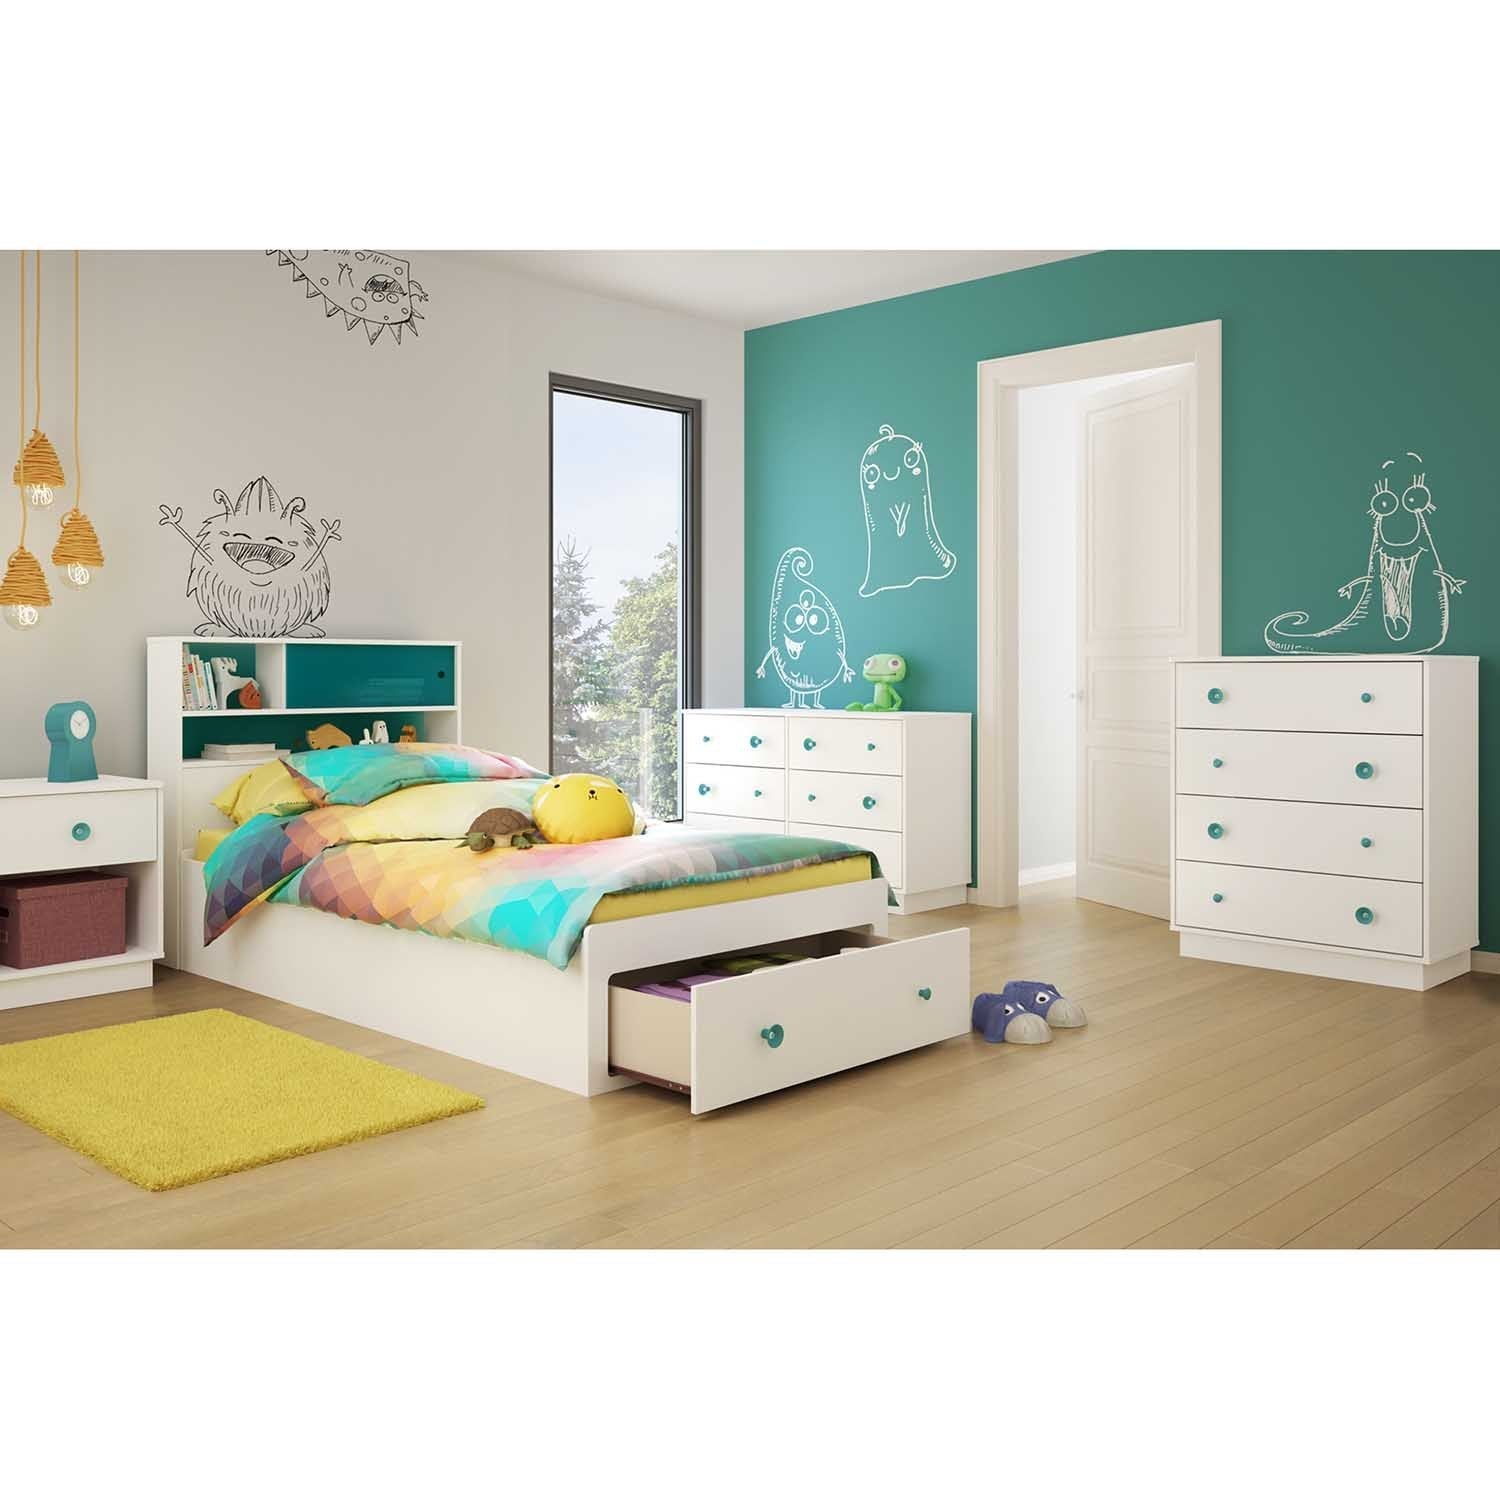 South Shore Little Monsters' White and Turquoise Twin Hea...